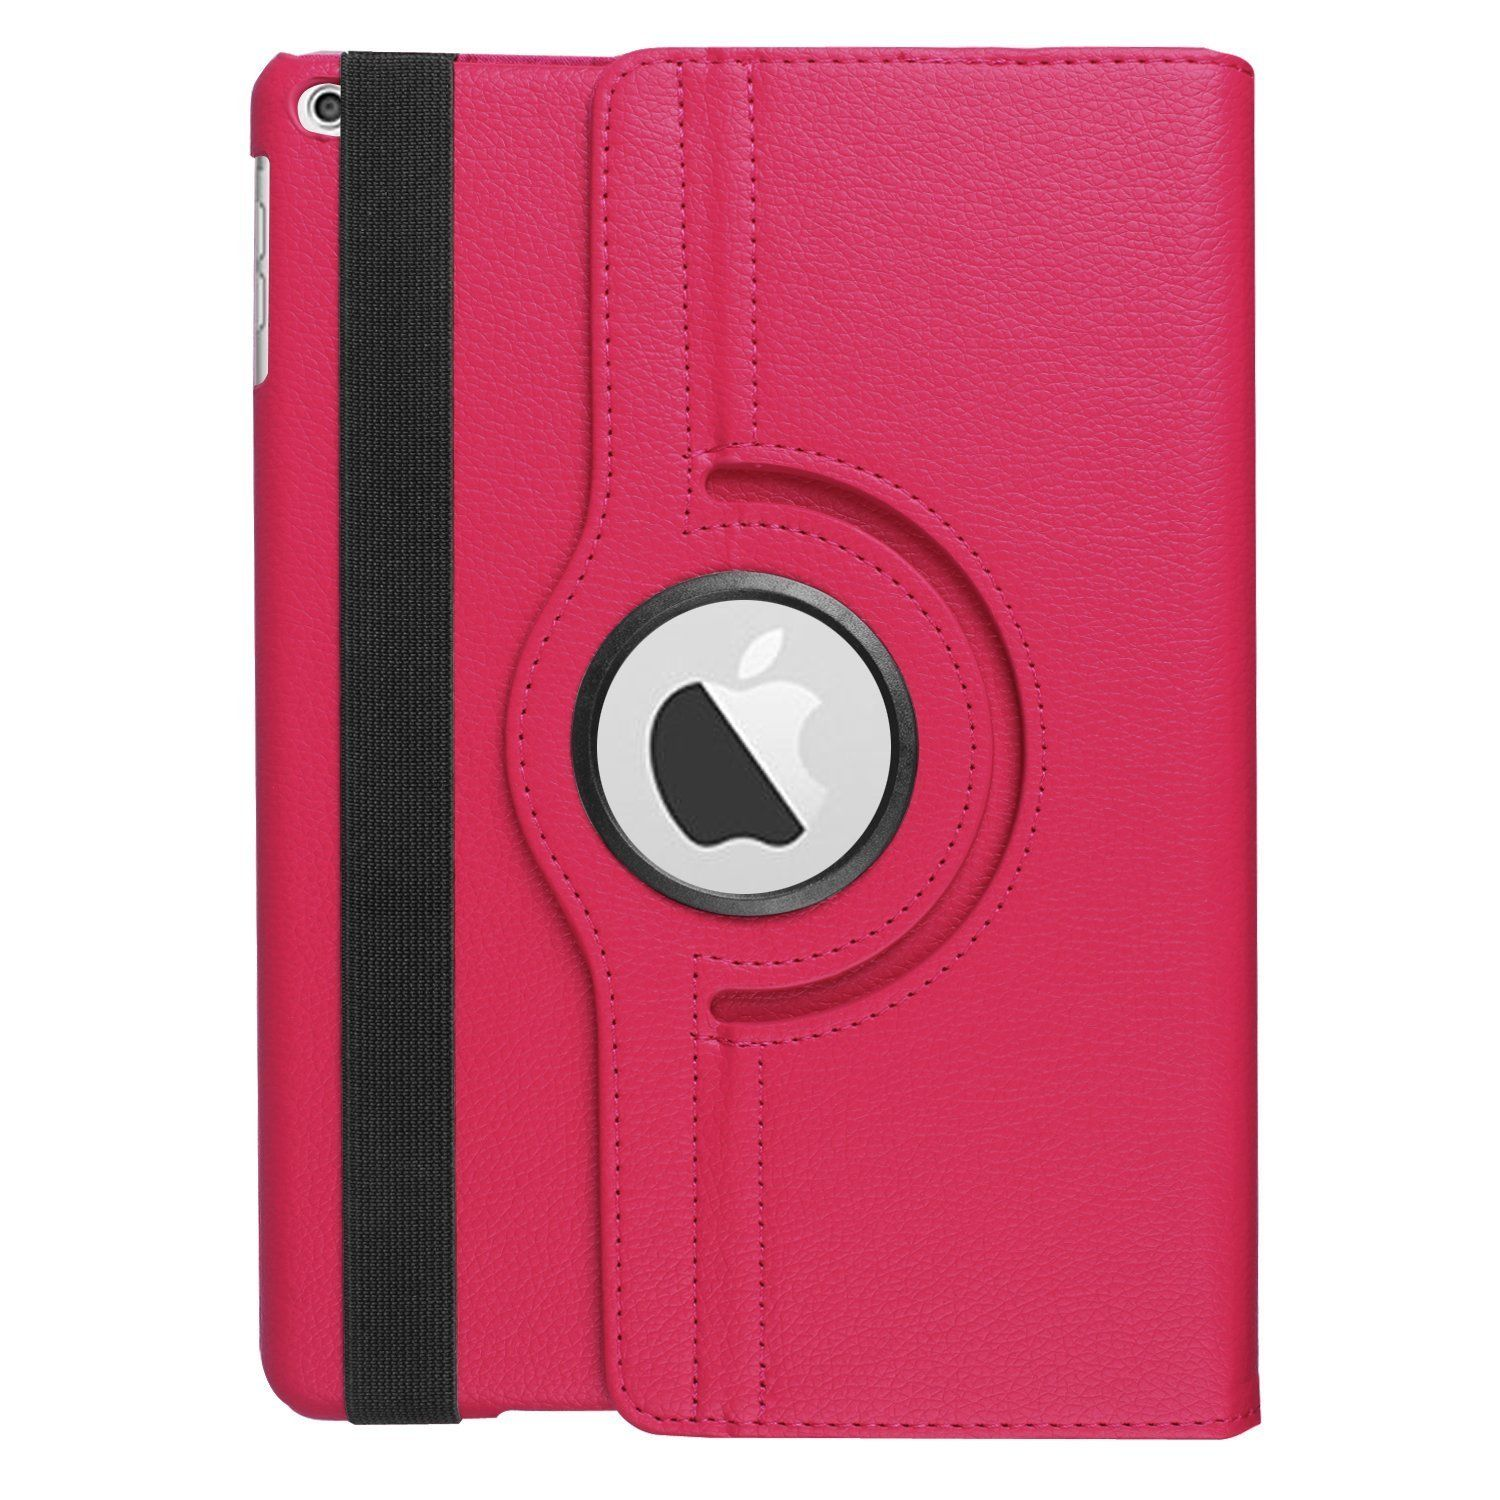 Custodia-per-Apple-iPad-Pro-2017-iPad-Air-3-10-5-Smart-Cover-Case-Custodia-Protettiva miniatura 38